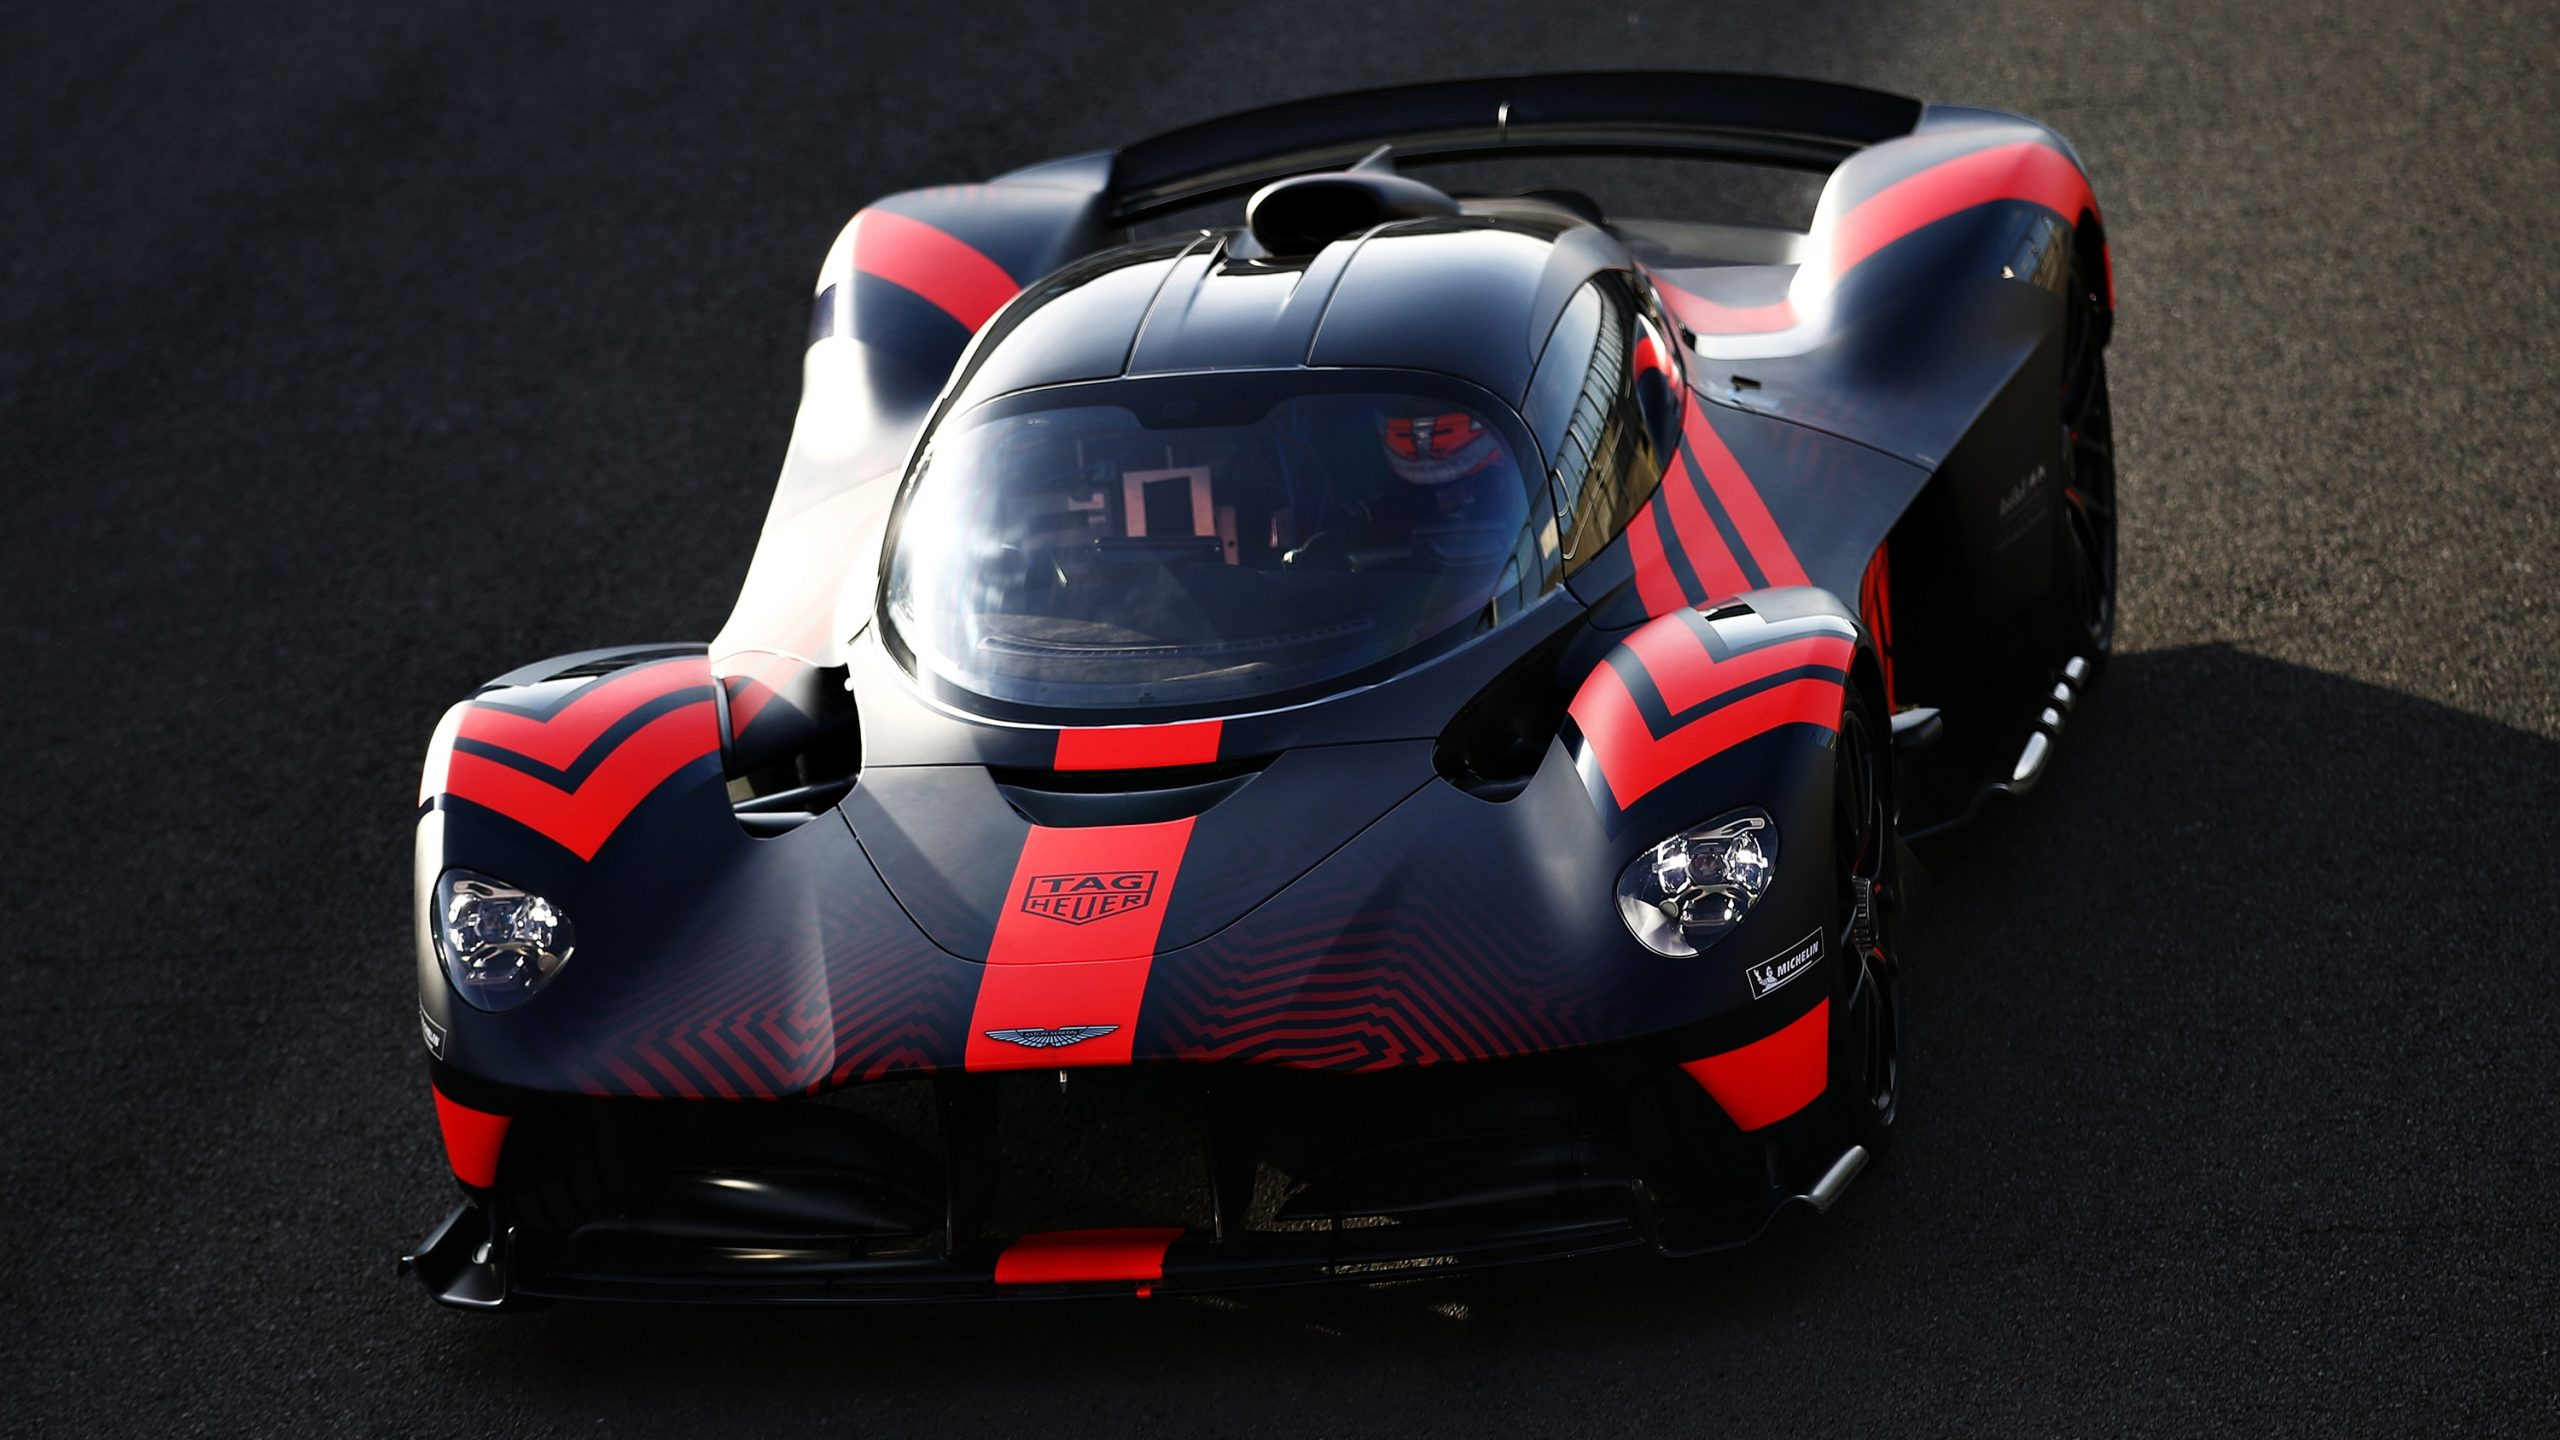 Watch Bonkers Aston Martin Valkyrie S Legs Stretch On The Track Technology Shout